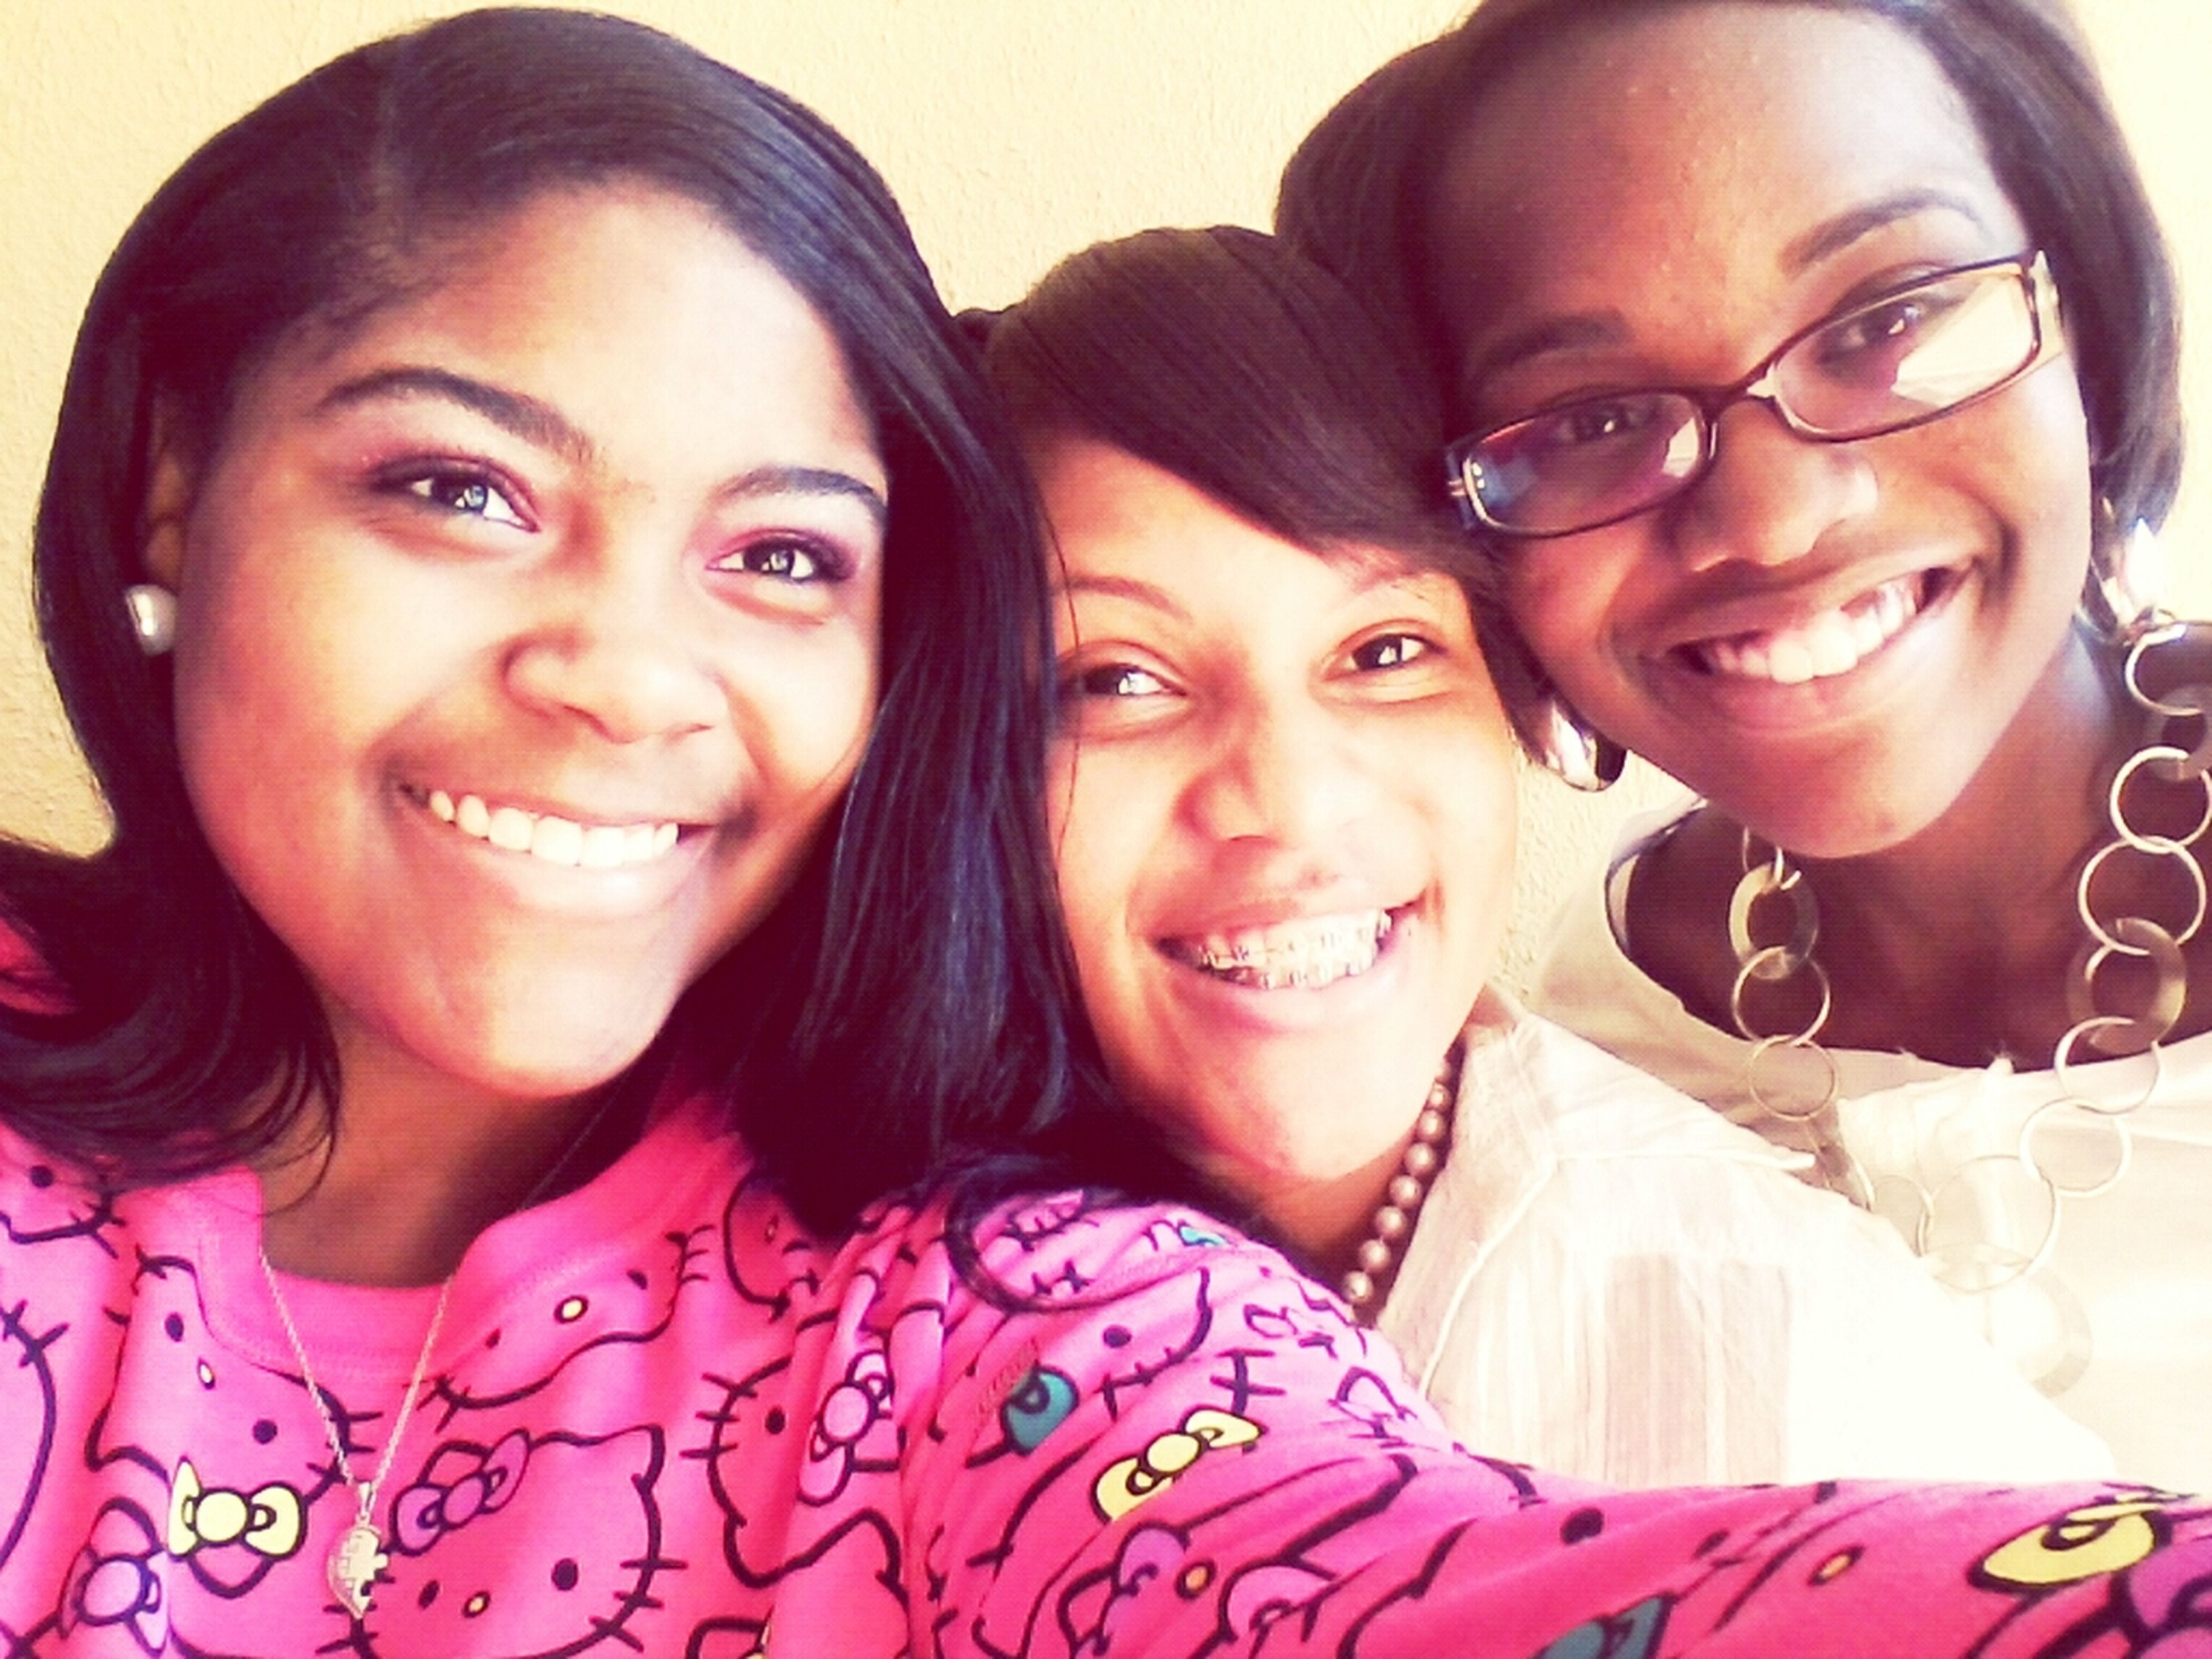 Me And My Dolls